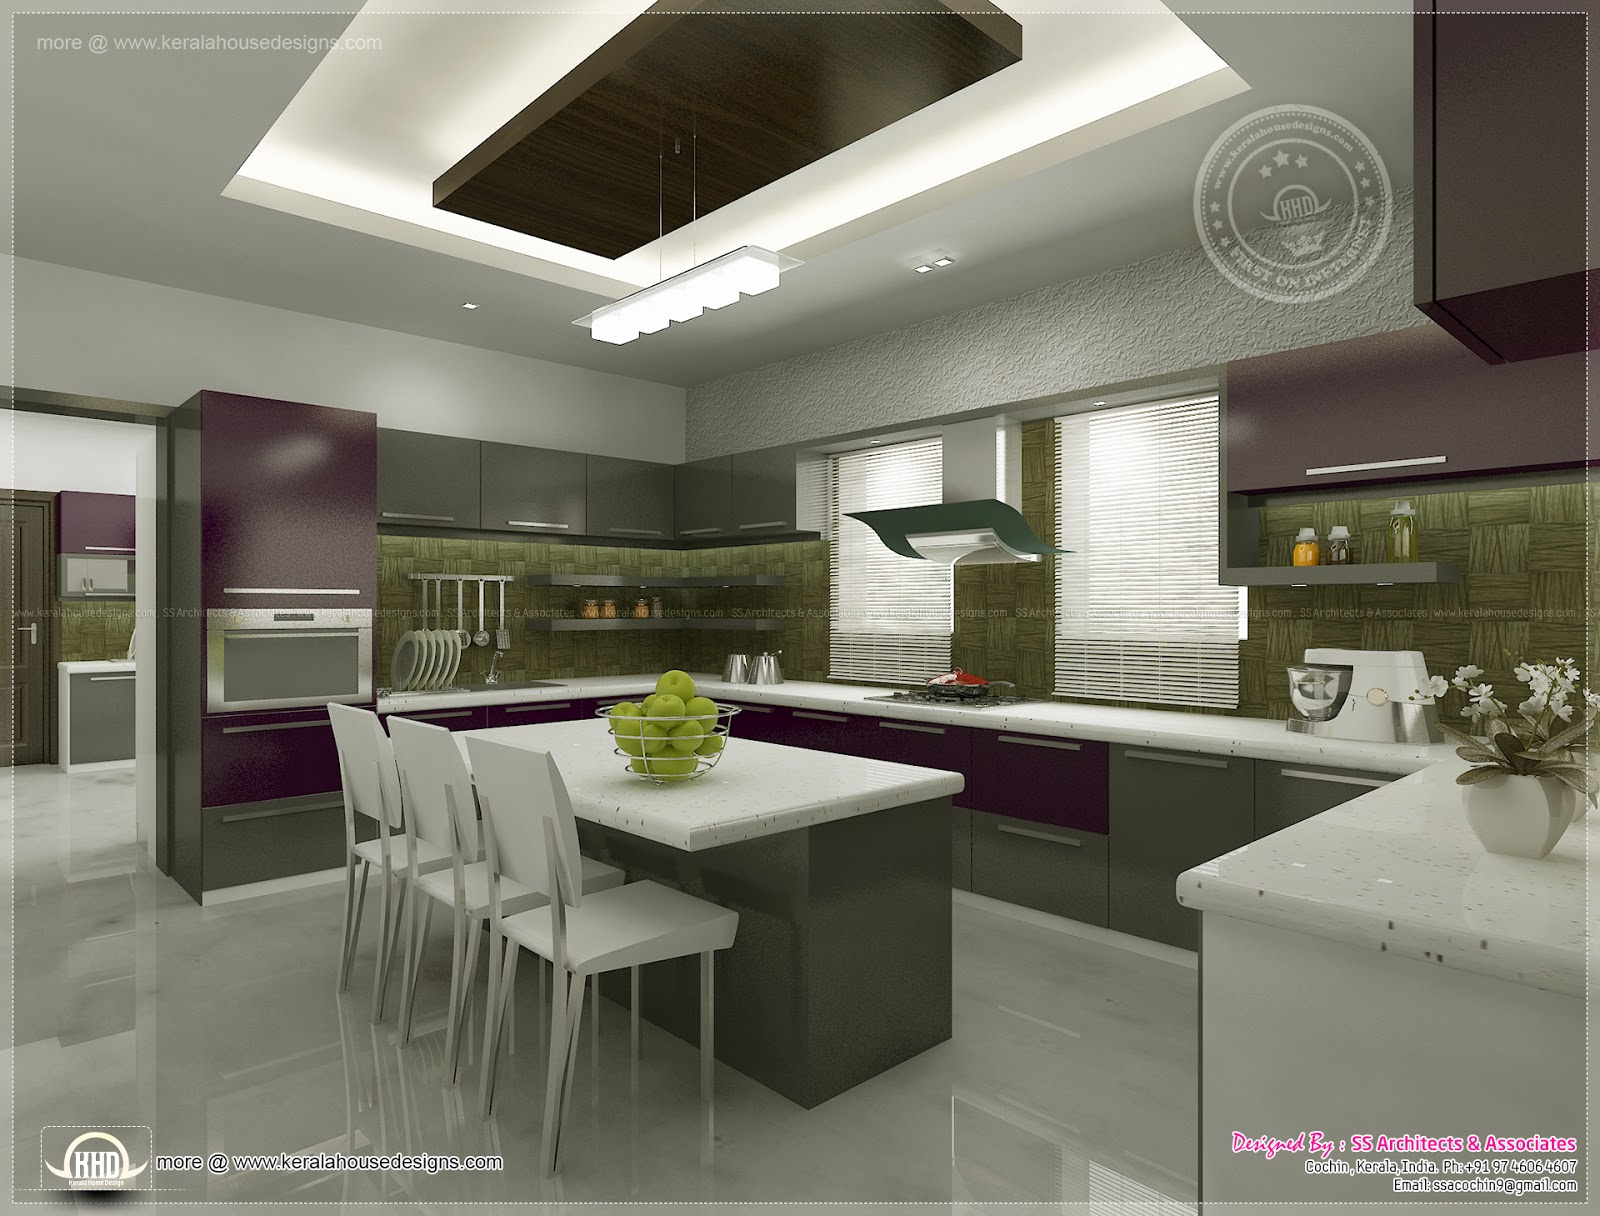 Kitchen interior views by ss architects cochin kerala for House plans interior photos